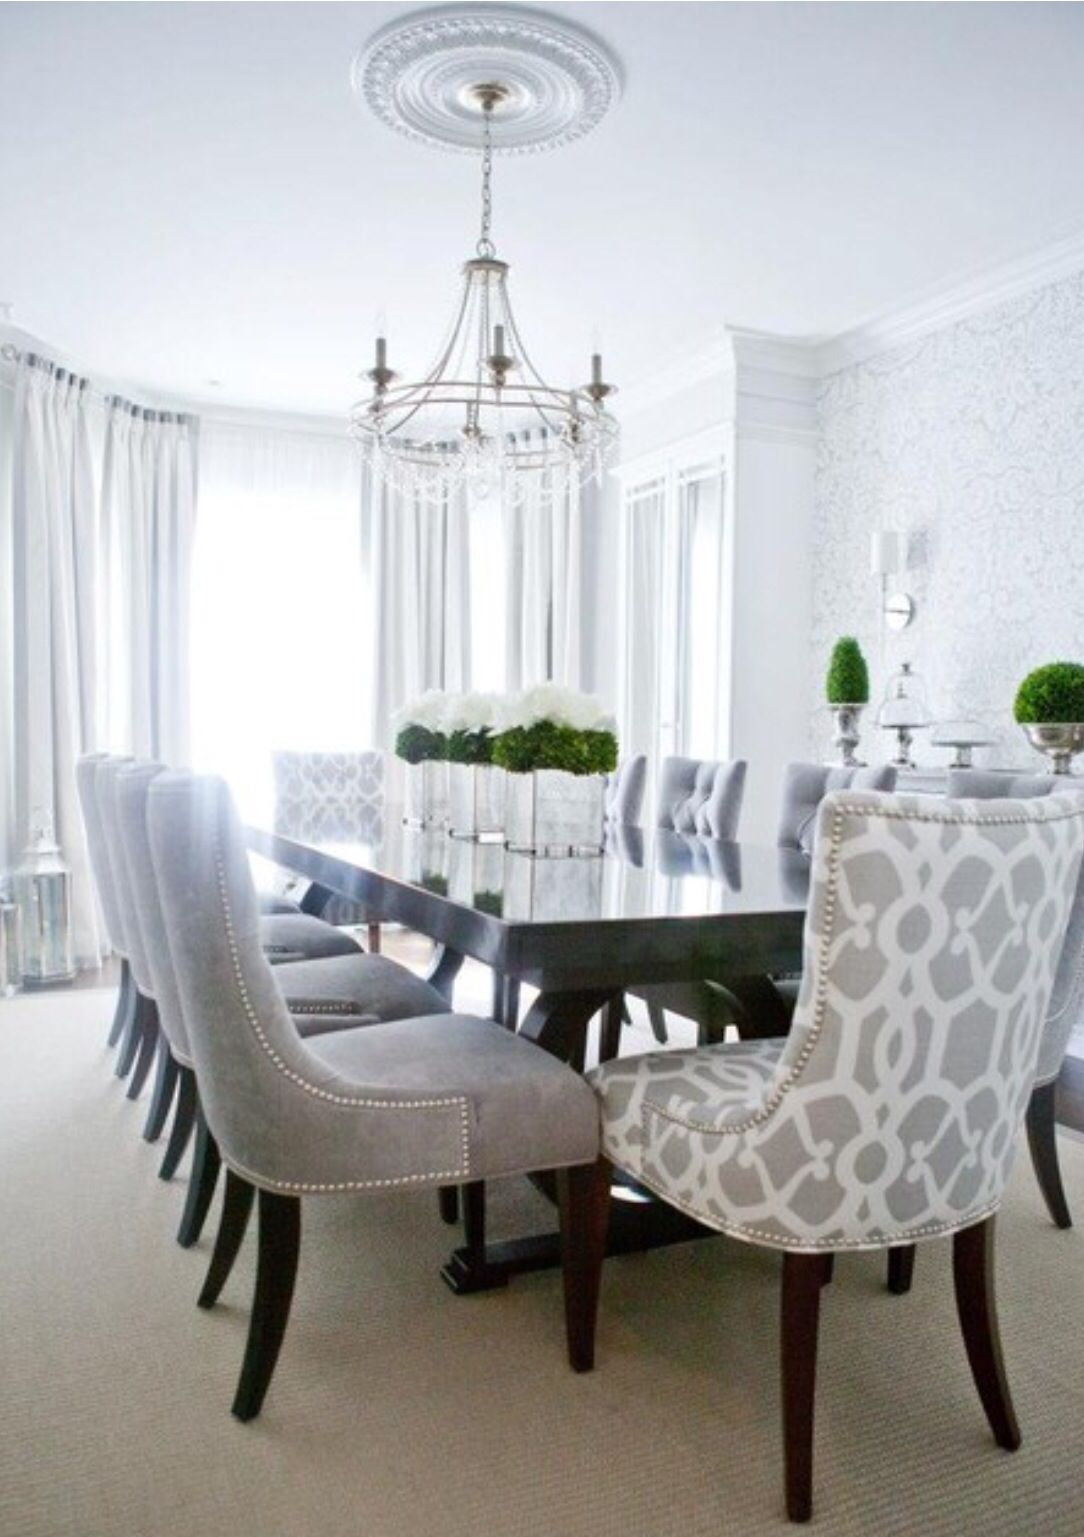 Gray Dining Room Chairs Grey Dining Decorating Dining Room Gray Dining Chairs